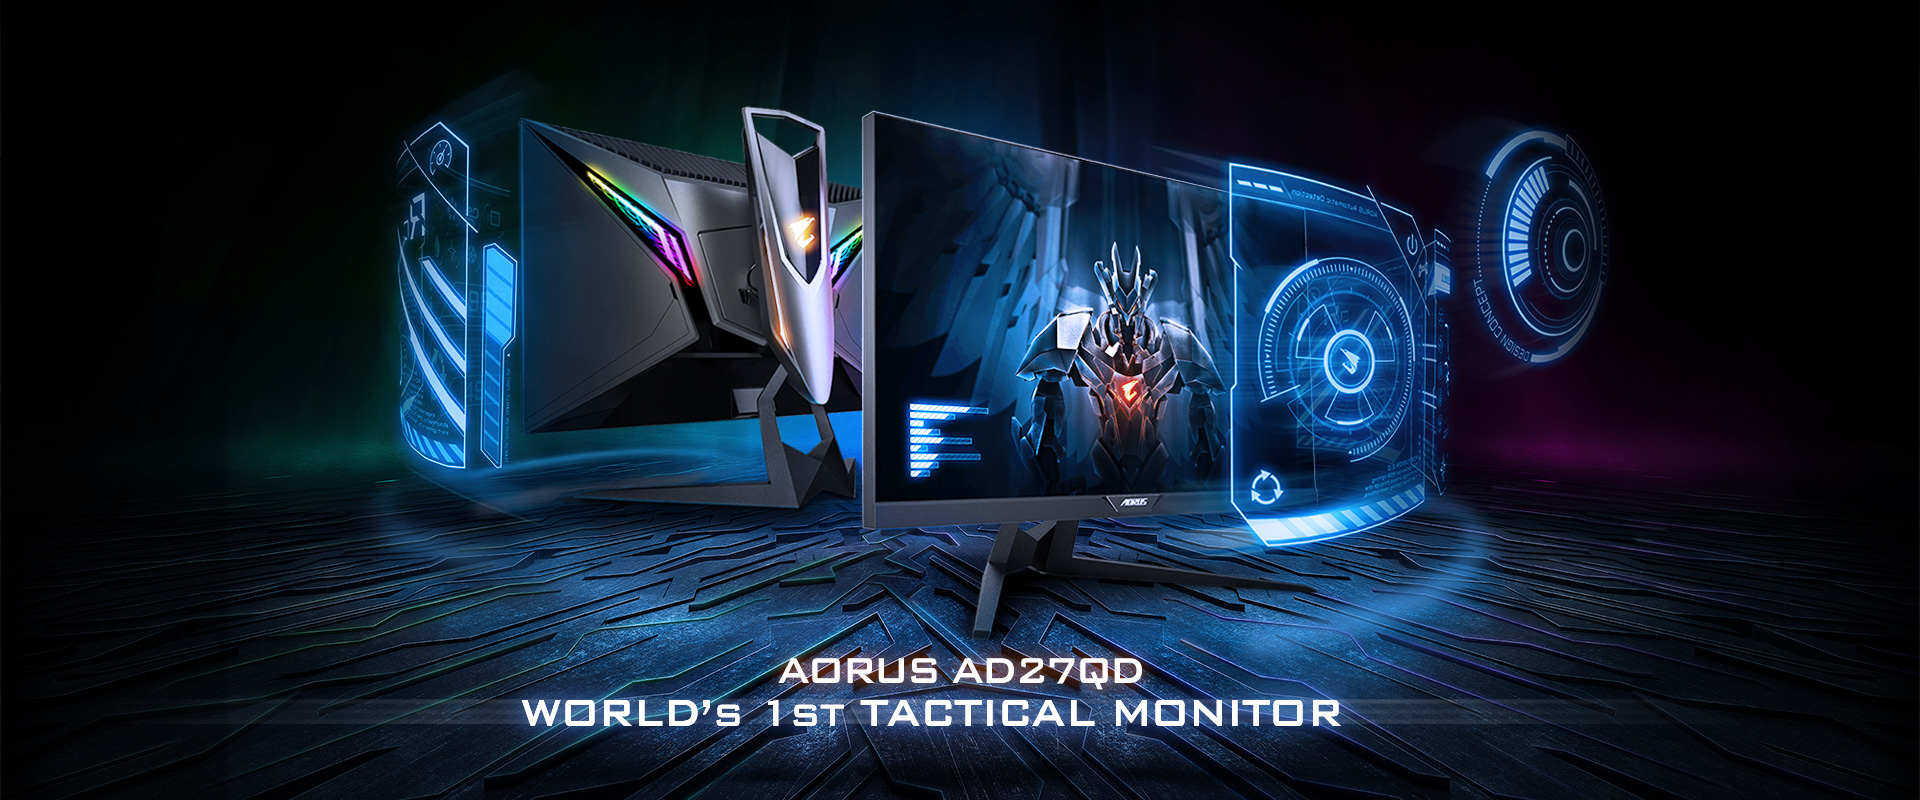 Aorus Enthusiasts Choice For Pc Gaming And Esports